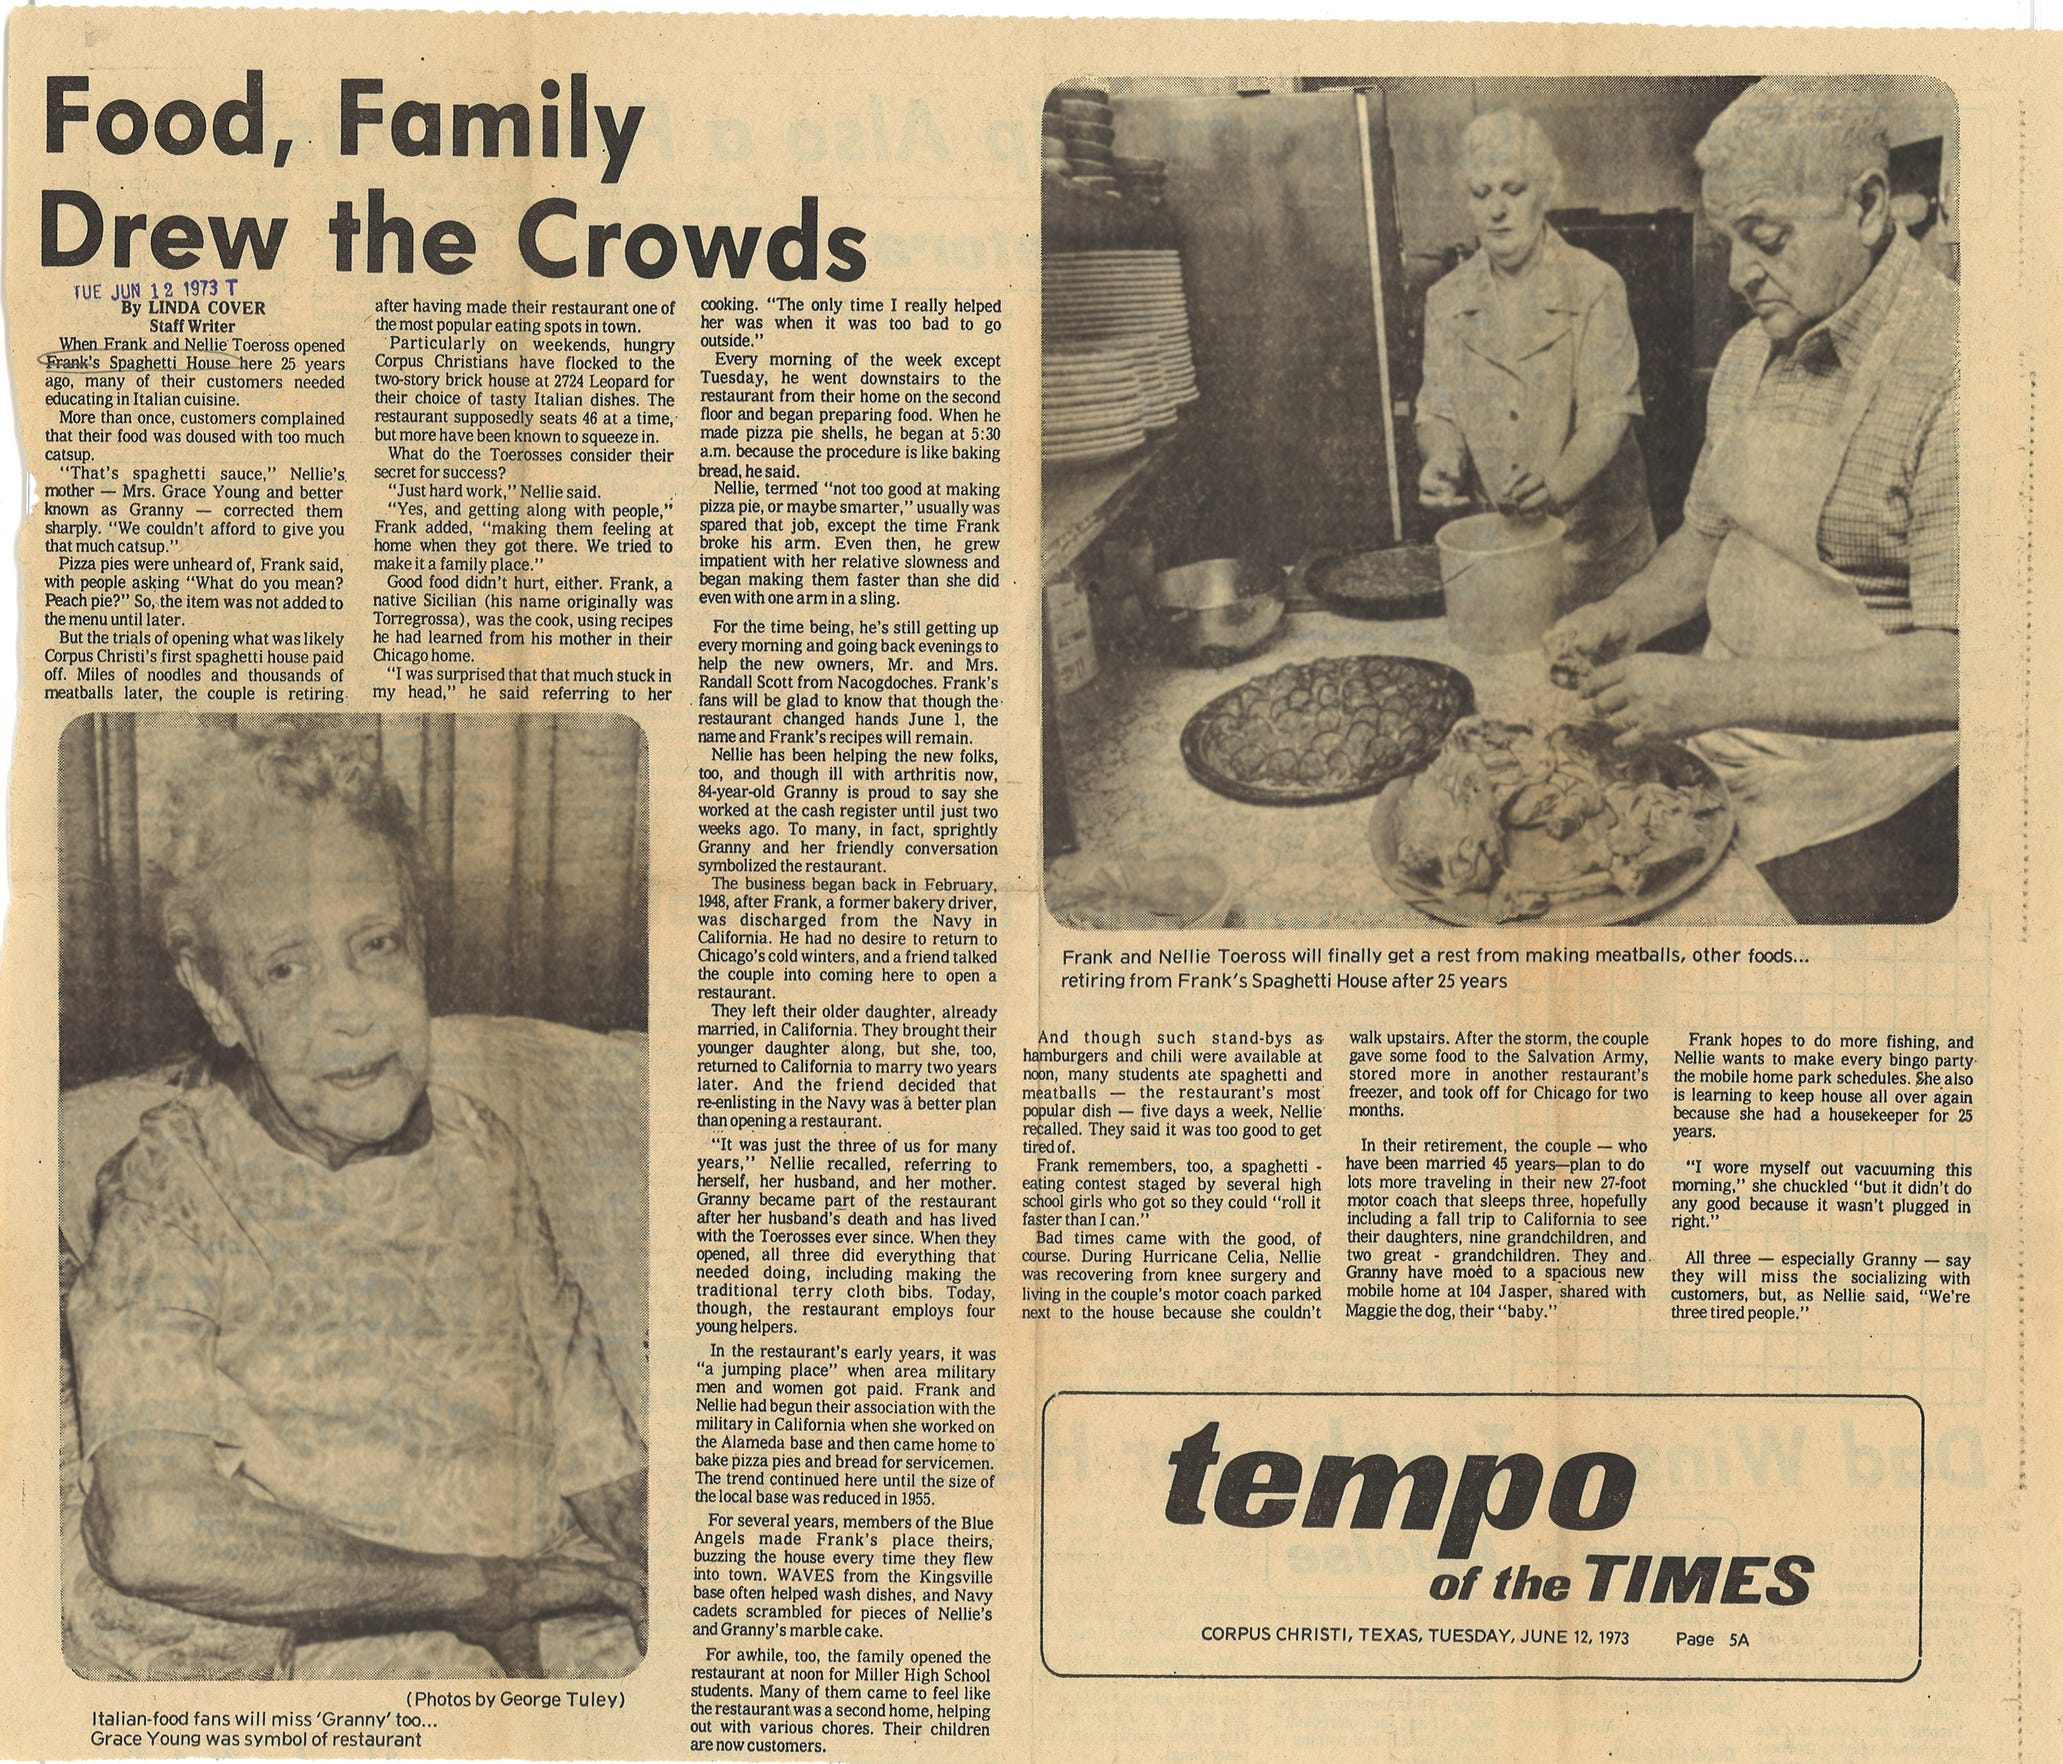 A clipping from the Corpus Christi Caller-Times about Frank's Spaghetti House in June 1973.